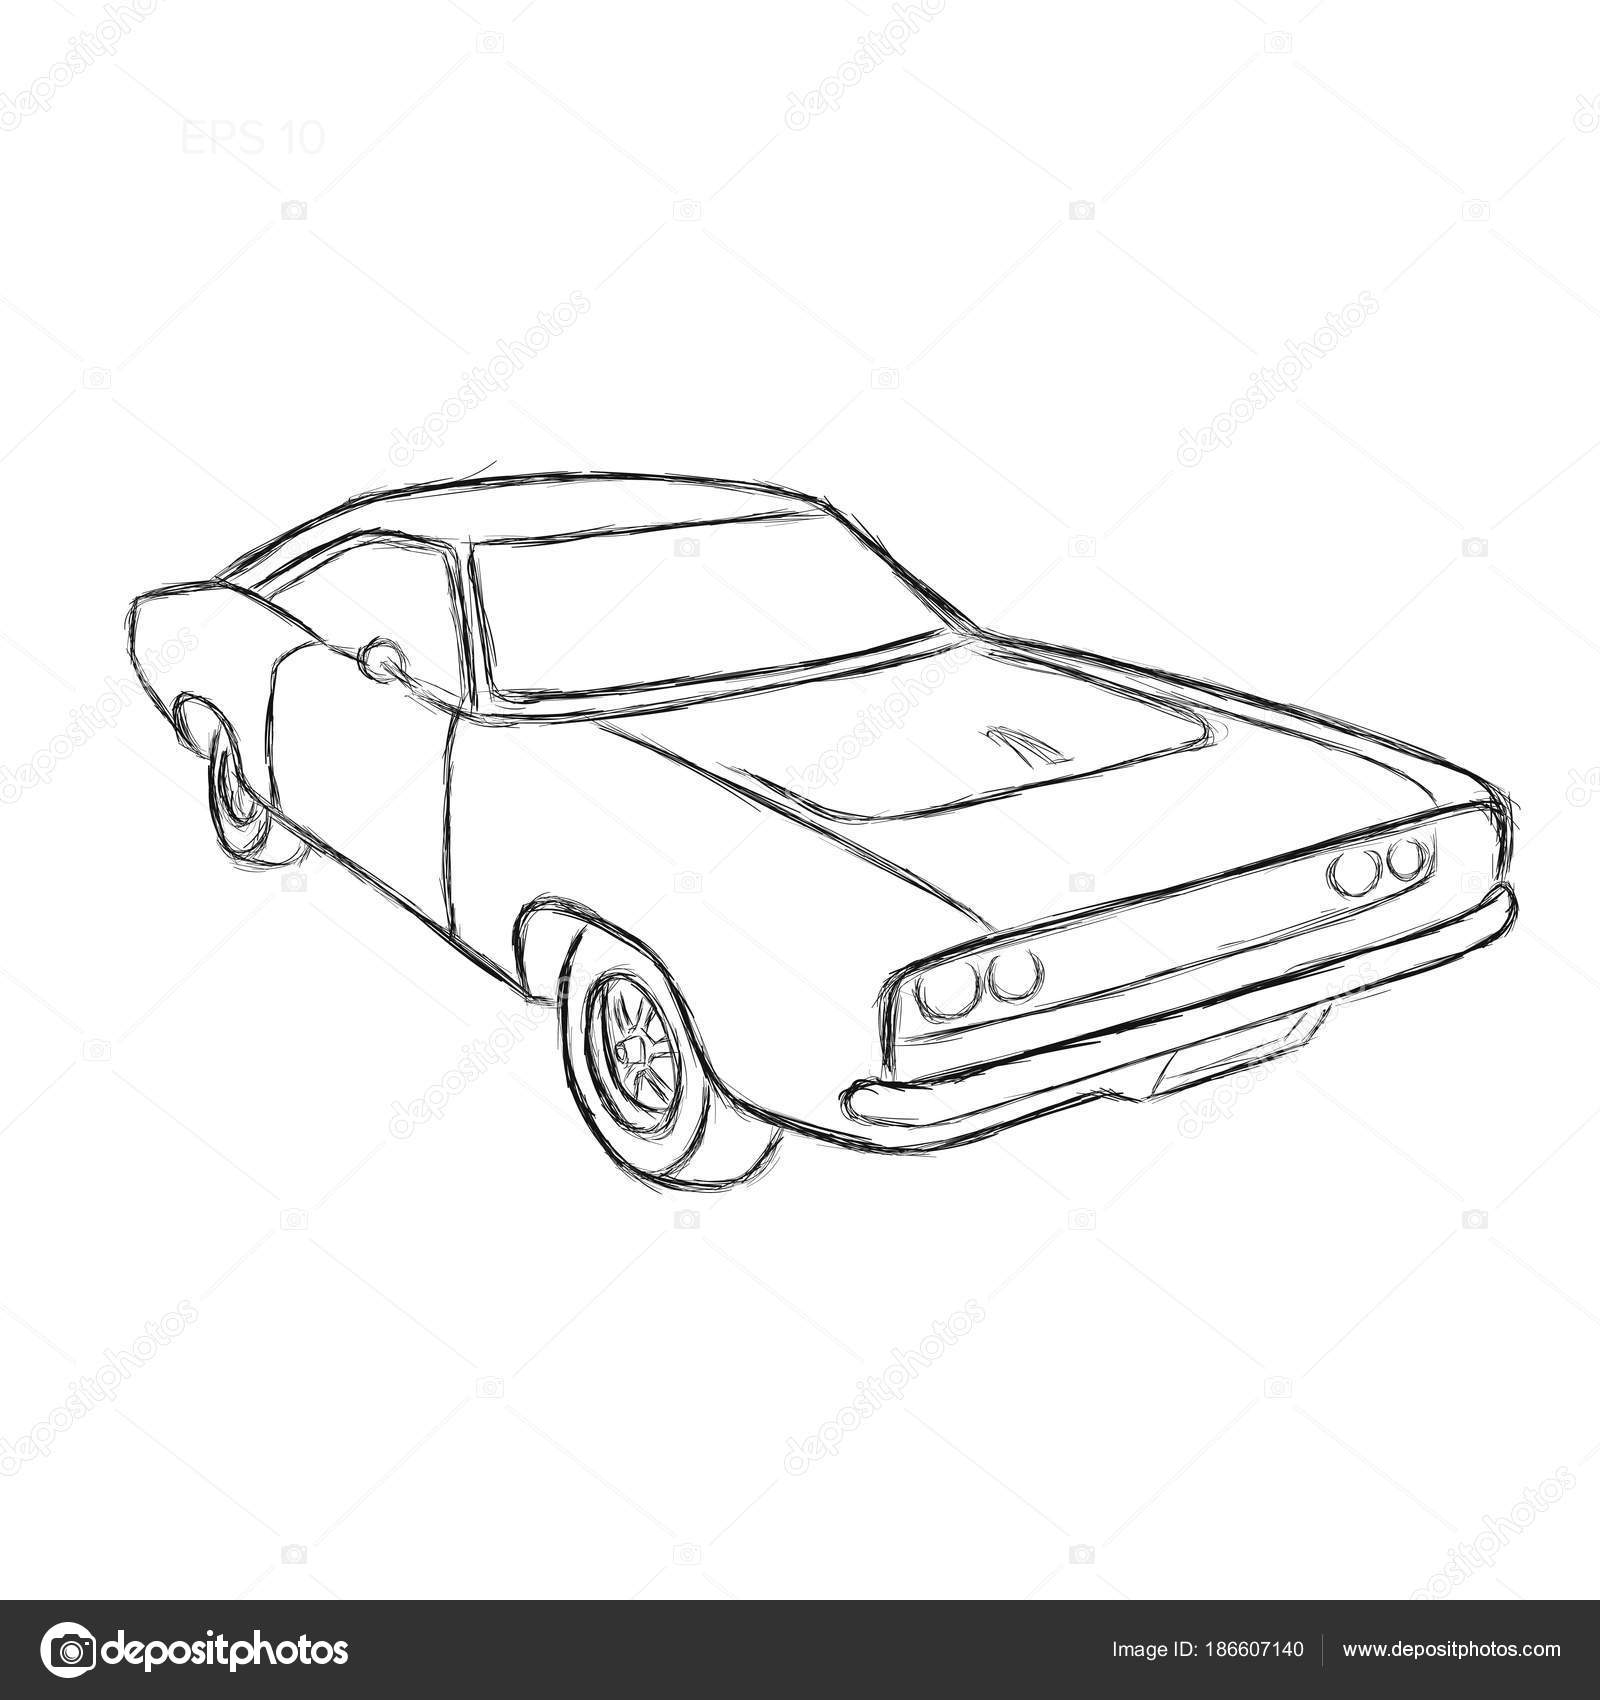 Classic American Muscle Car Hand Drawn Vector Illustration Sketch